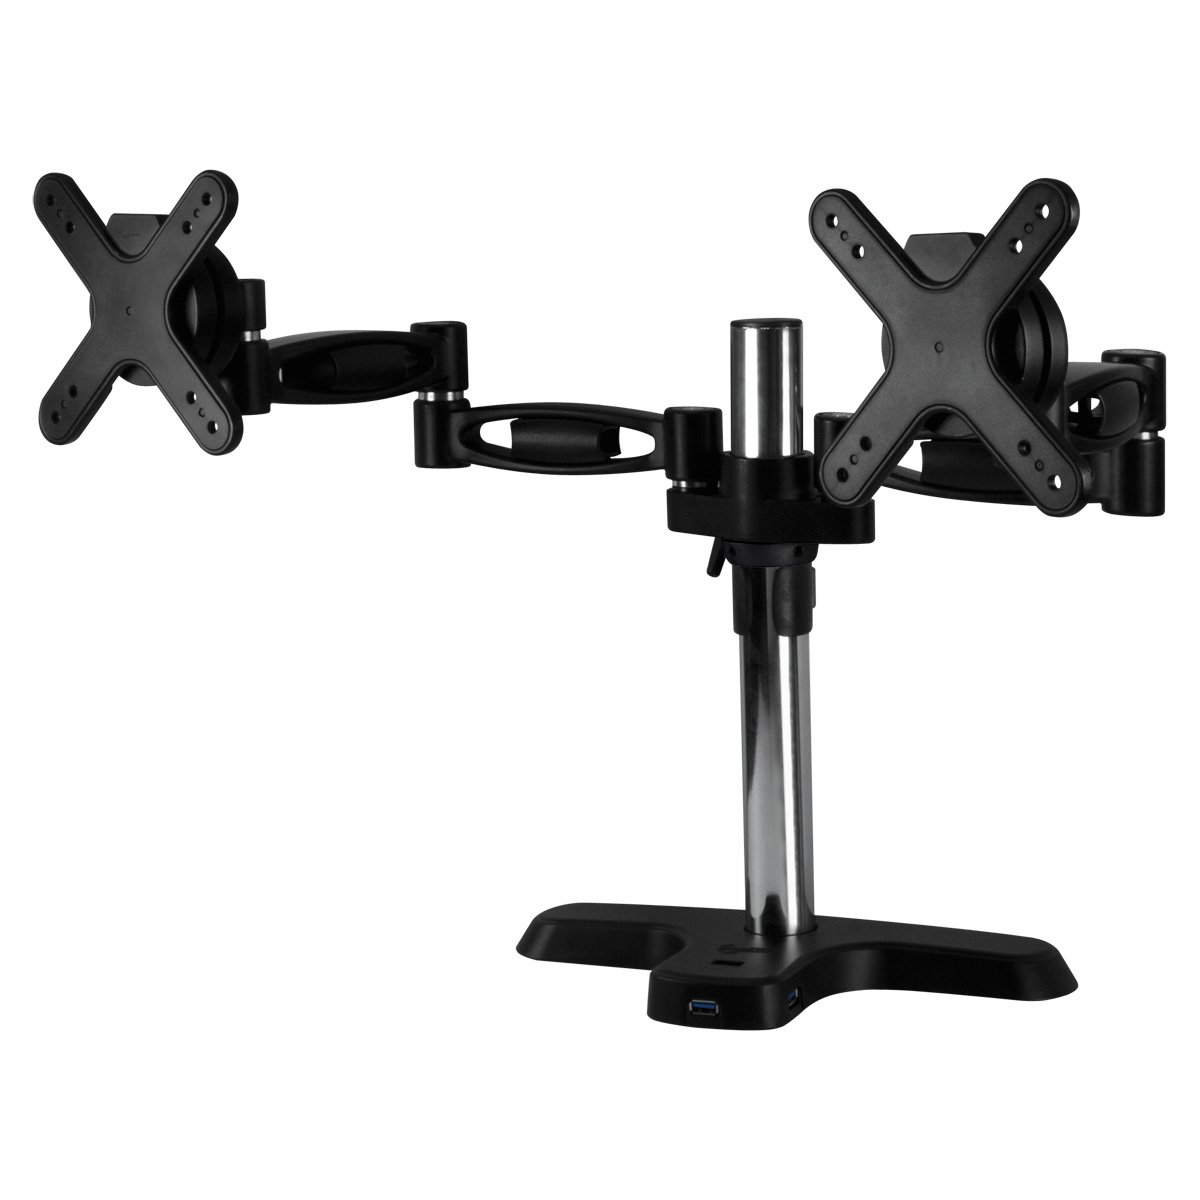 ARCTIC Z2 Pro (Gen 2) - Desk Mount Dual Monitor Arm with 4 Ports USB 3.0 Hub for 13-27 inch I Up to 10kg weight capacity I 360 degree rotation - Black